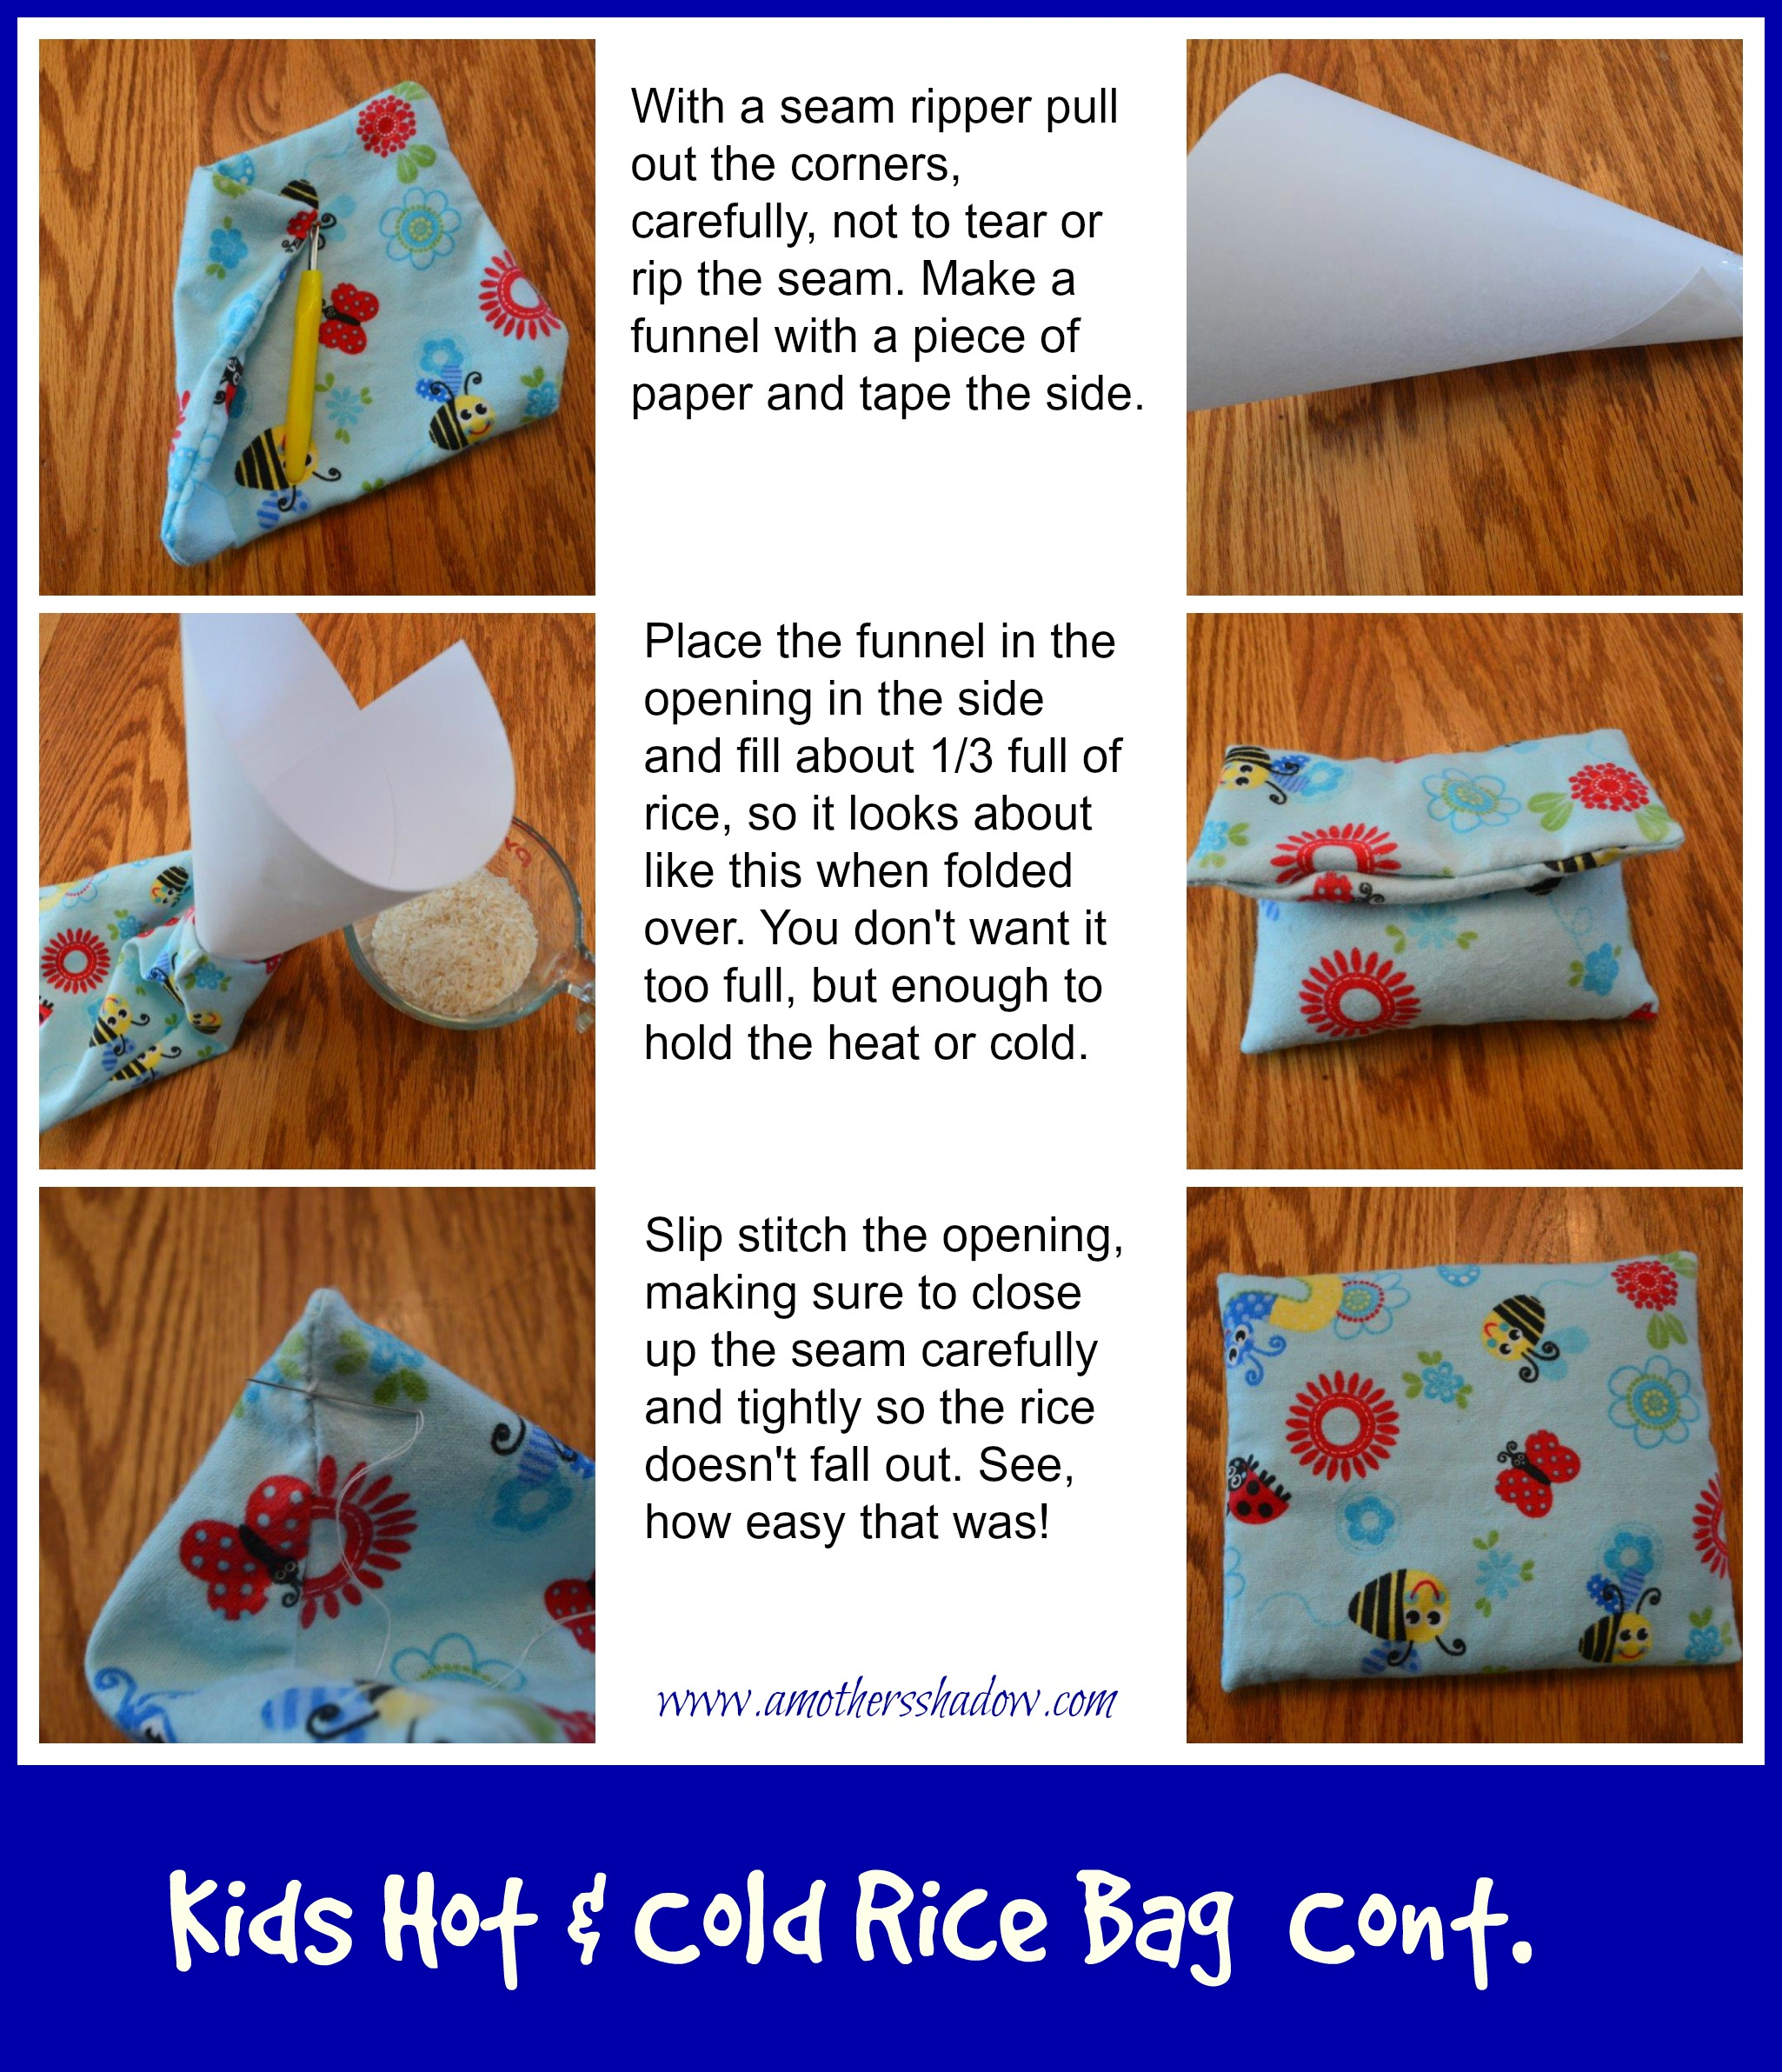 Kids Hot & Cold Rice Bag 2